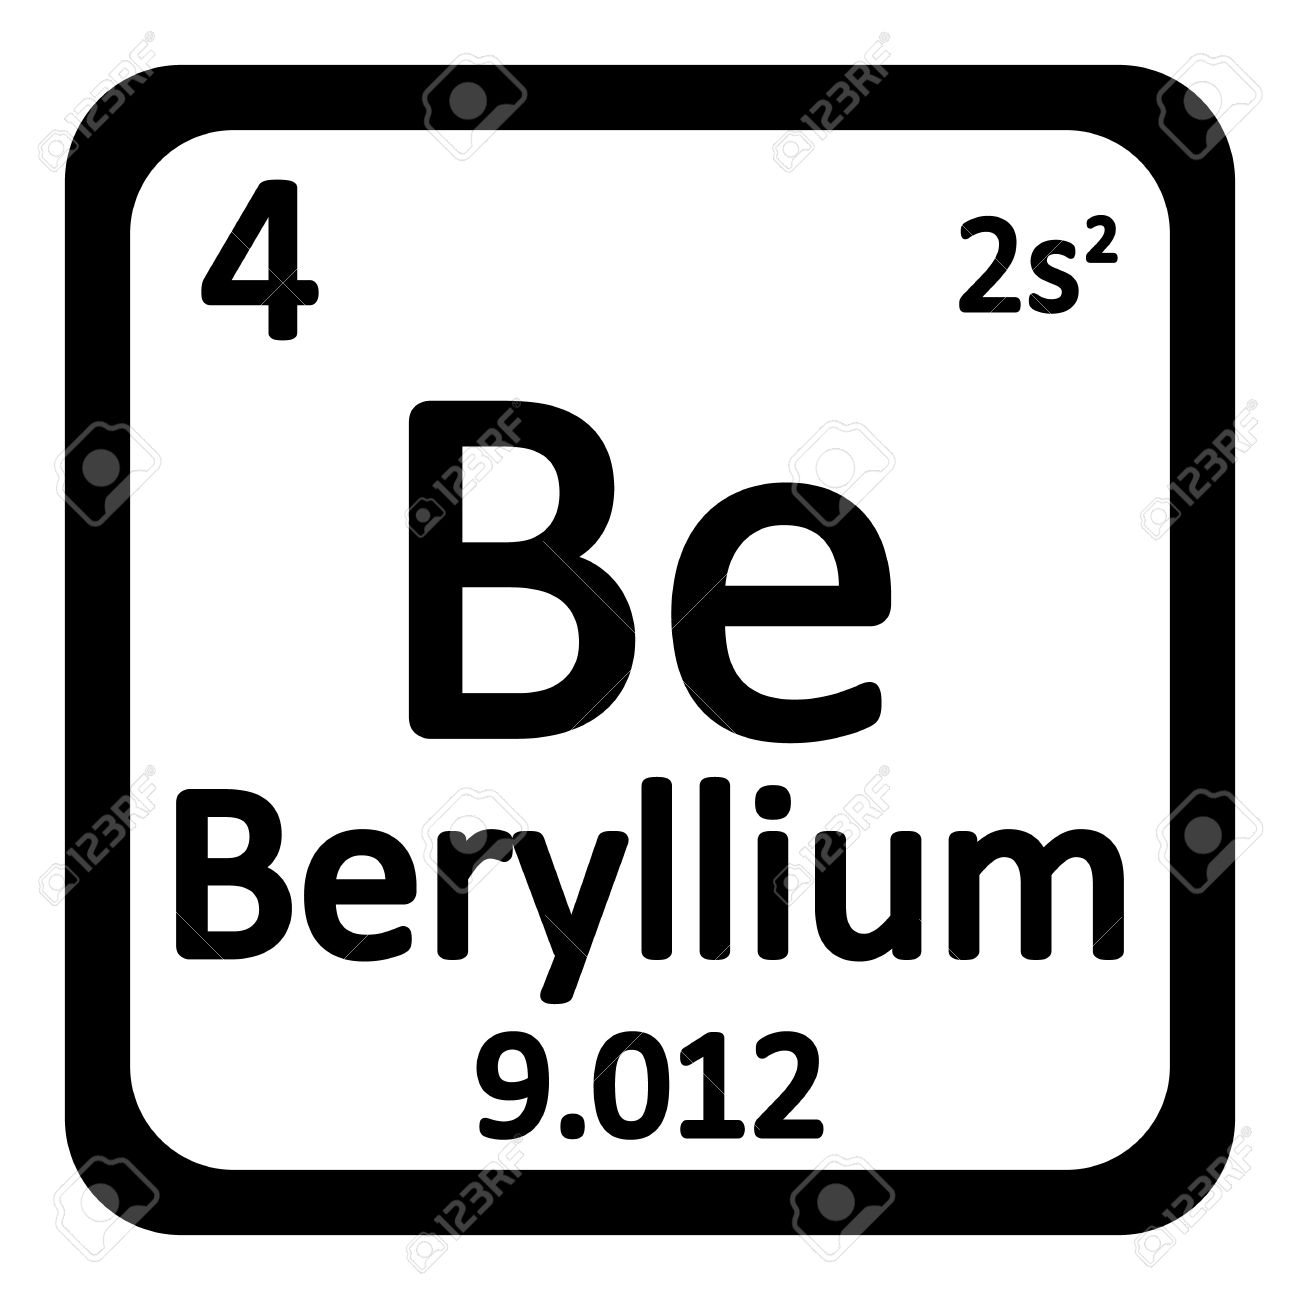 Beryllium on the periodic table image collections periodic table periodic table beryllium images periodic table images periodic table beryllium images periodic table images periodic table gamestrikefo Image collections